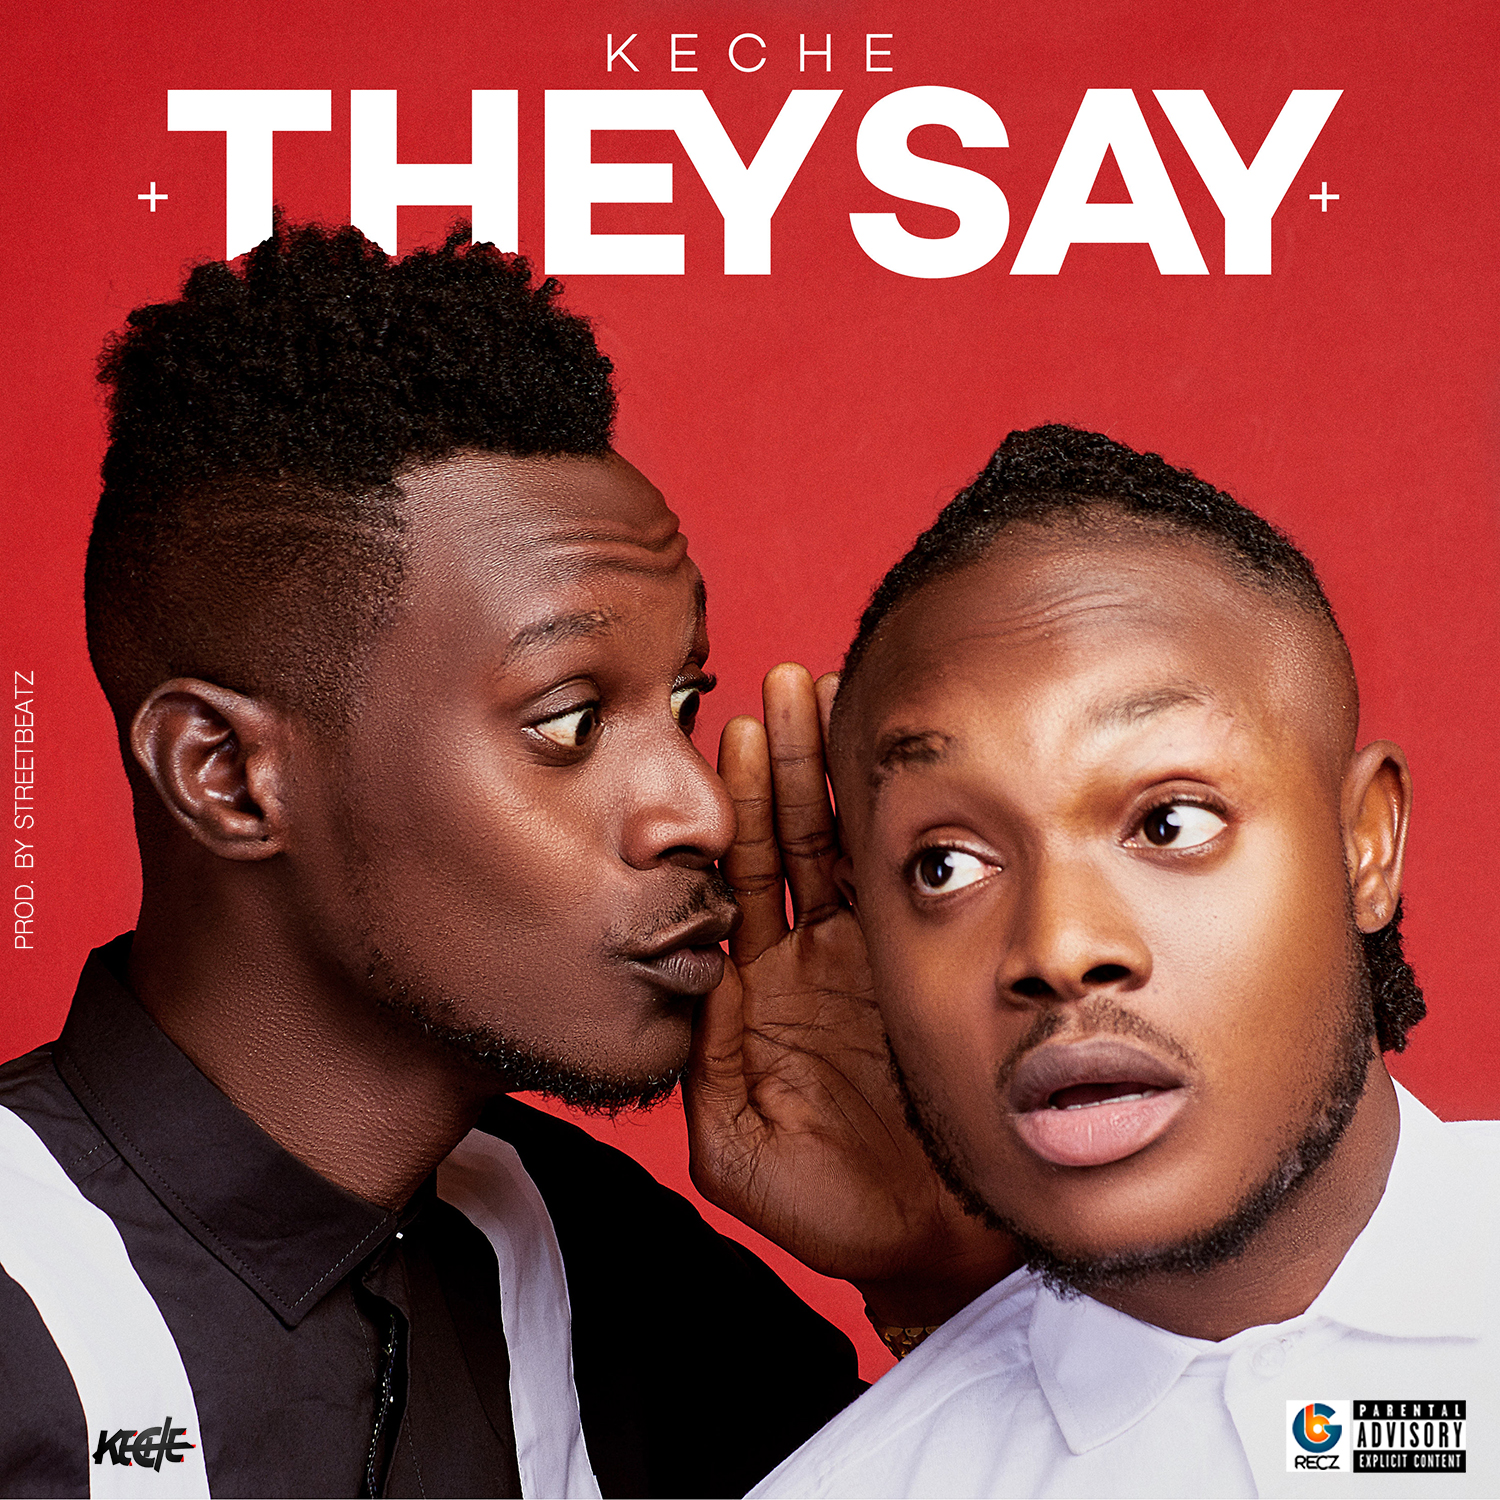 Watch: Keche out with a new single titled 'They Say'